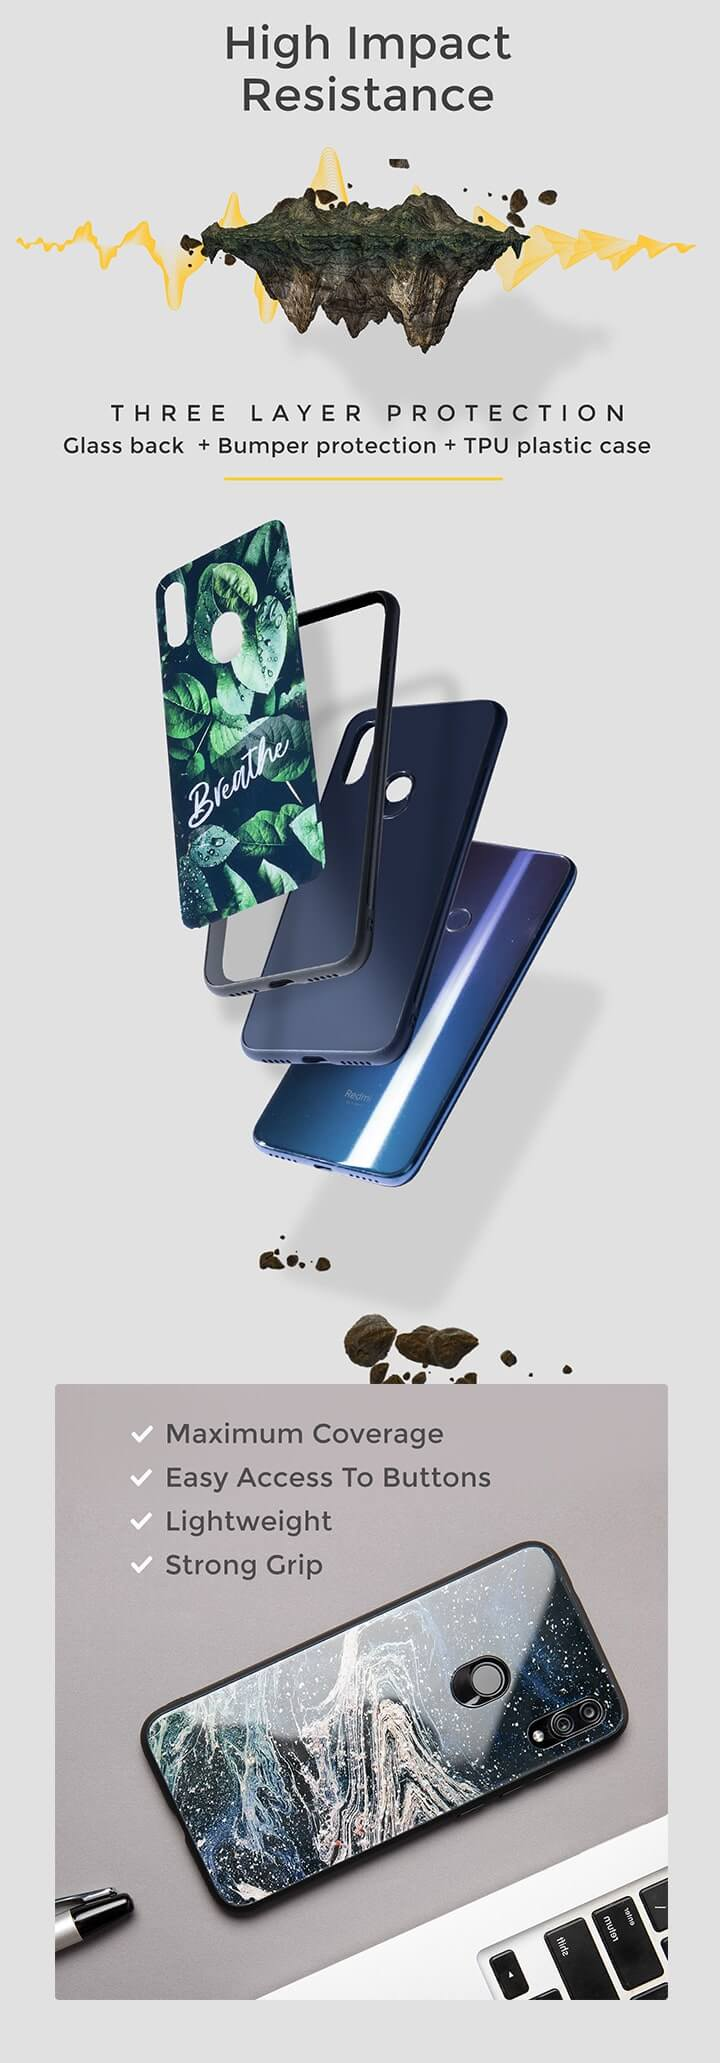 Lazy Mickey OnePlus 7 Glass Mobile Cover Description Image Mobile Site 1@Bewakoof.com